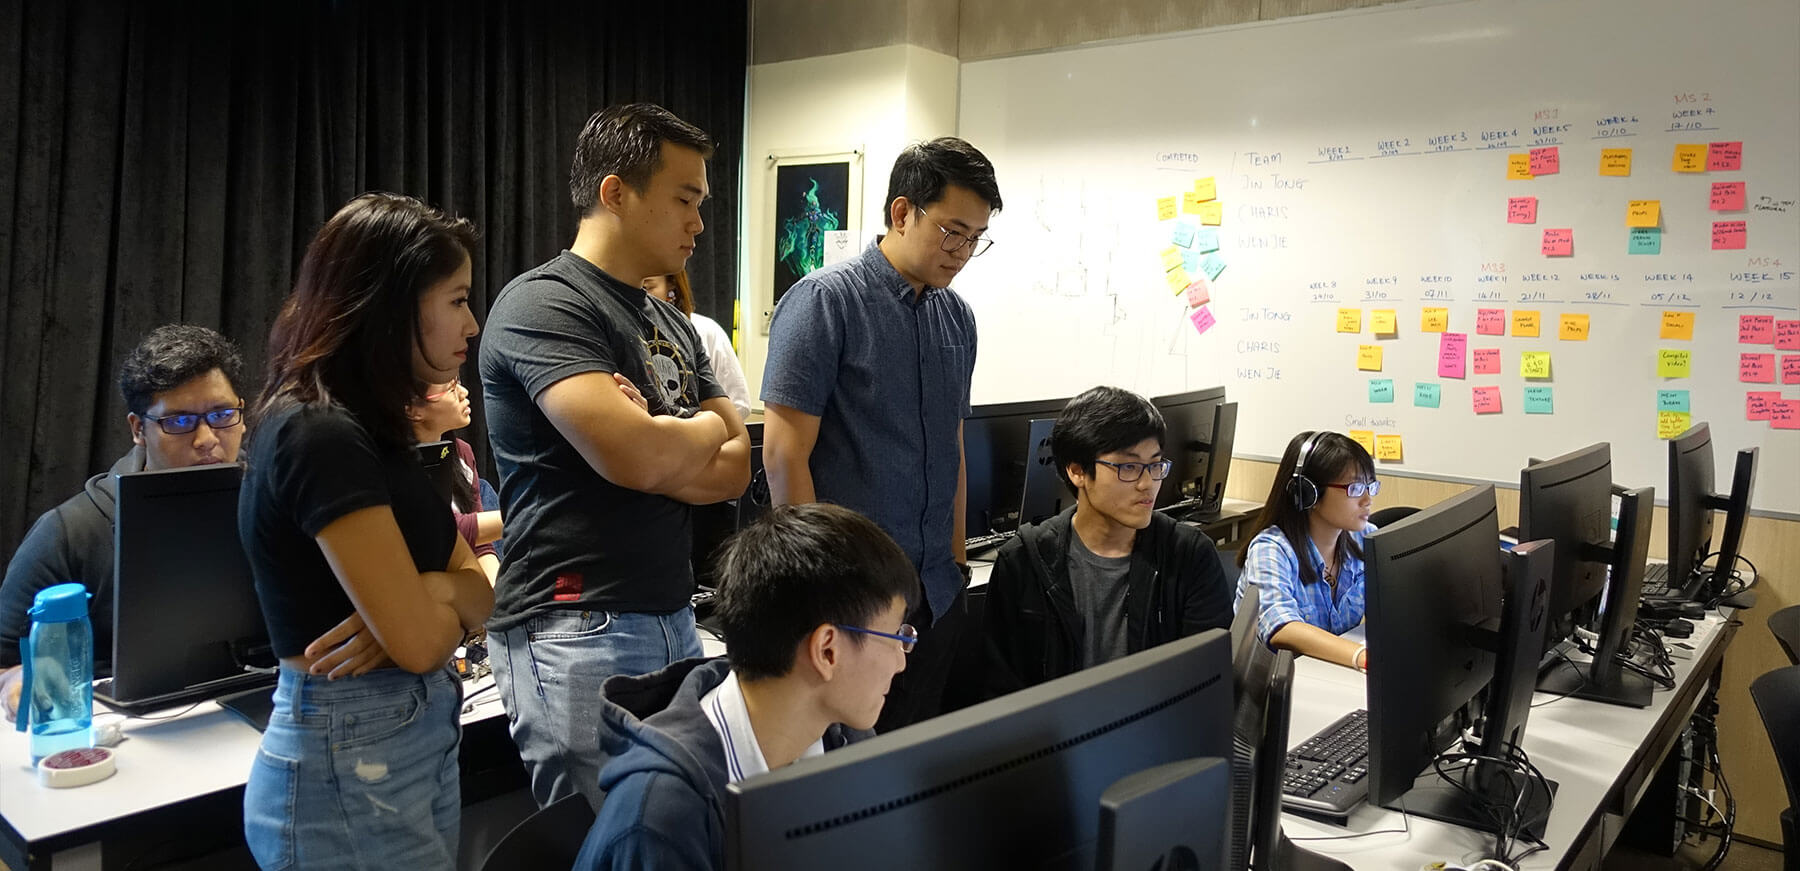 Kobe Sek from Ubisoft Singapore and others look down at a student's monitor in a computer lab classroom, with students seated at two rows of workstations.